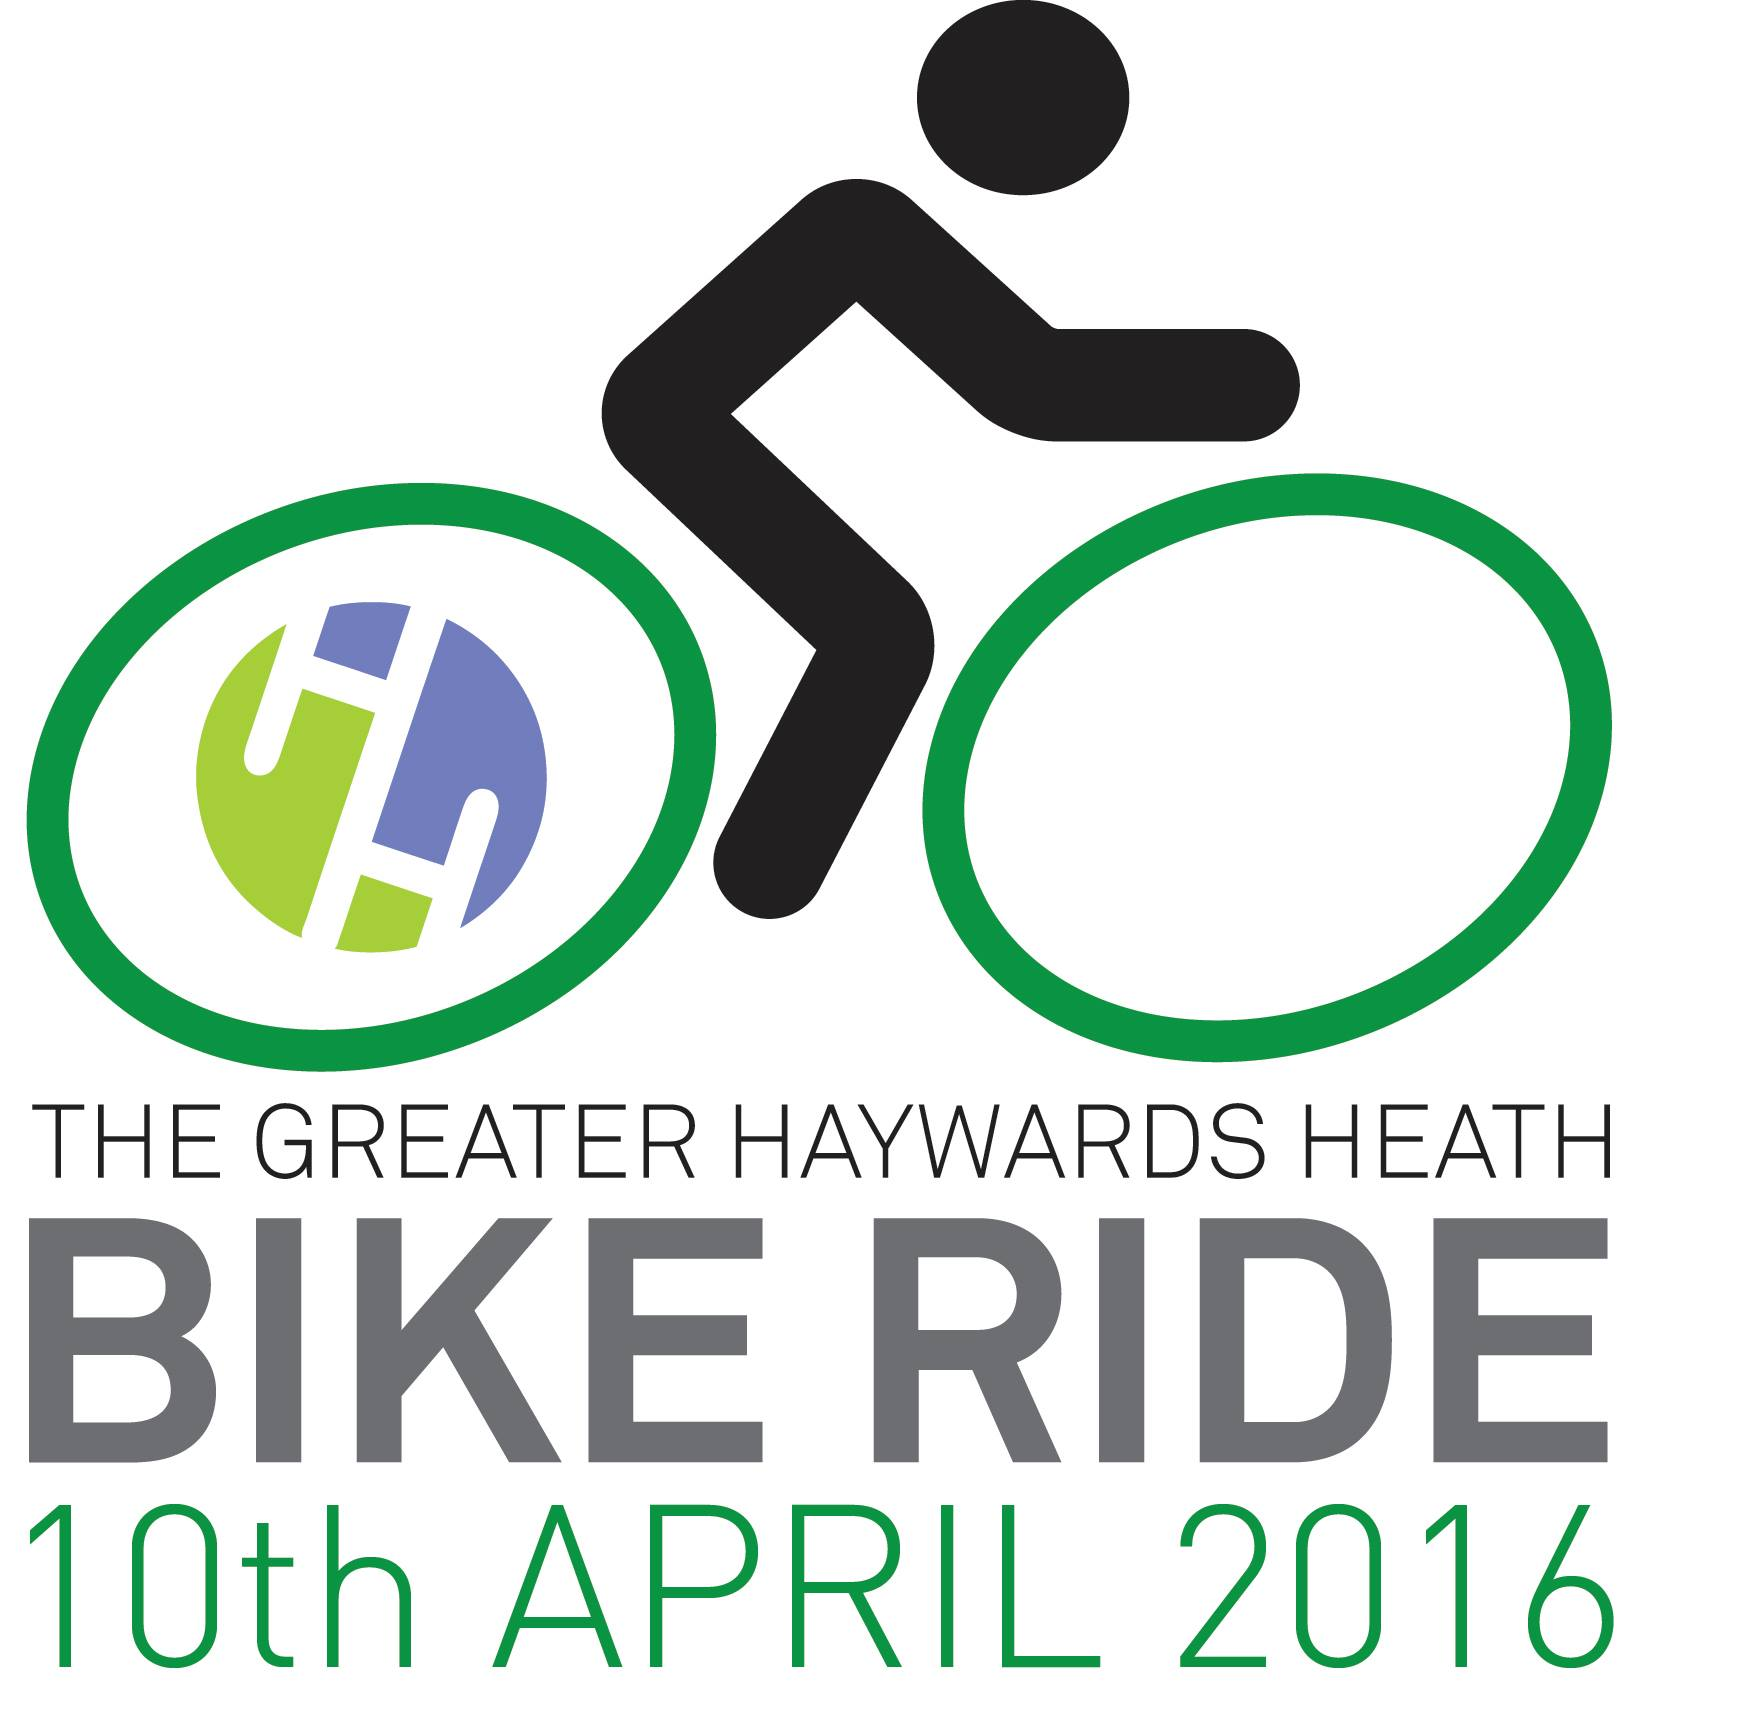 Greater Haywards Heath Bike Ride 2016